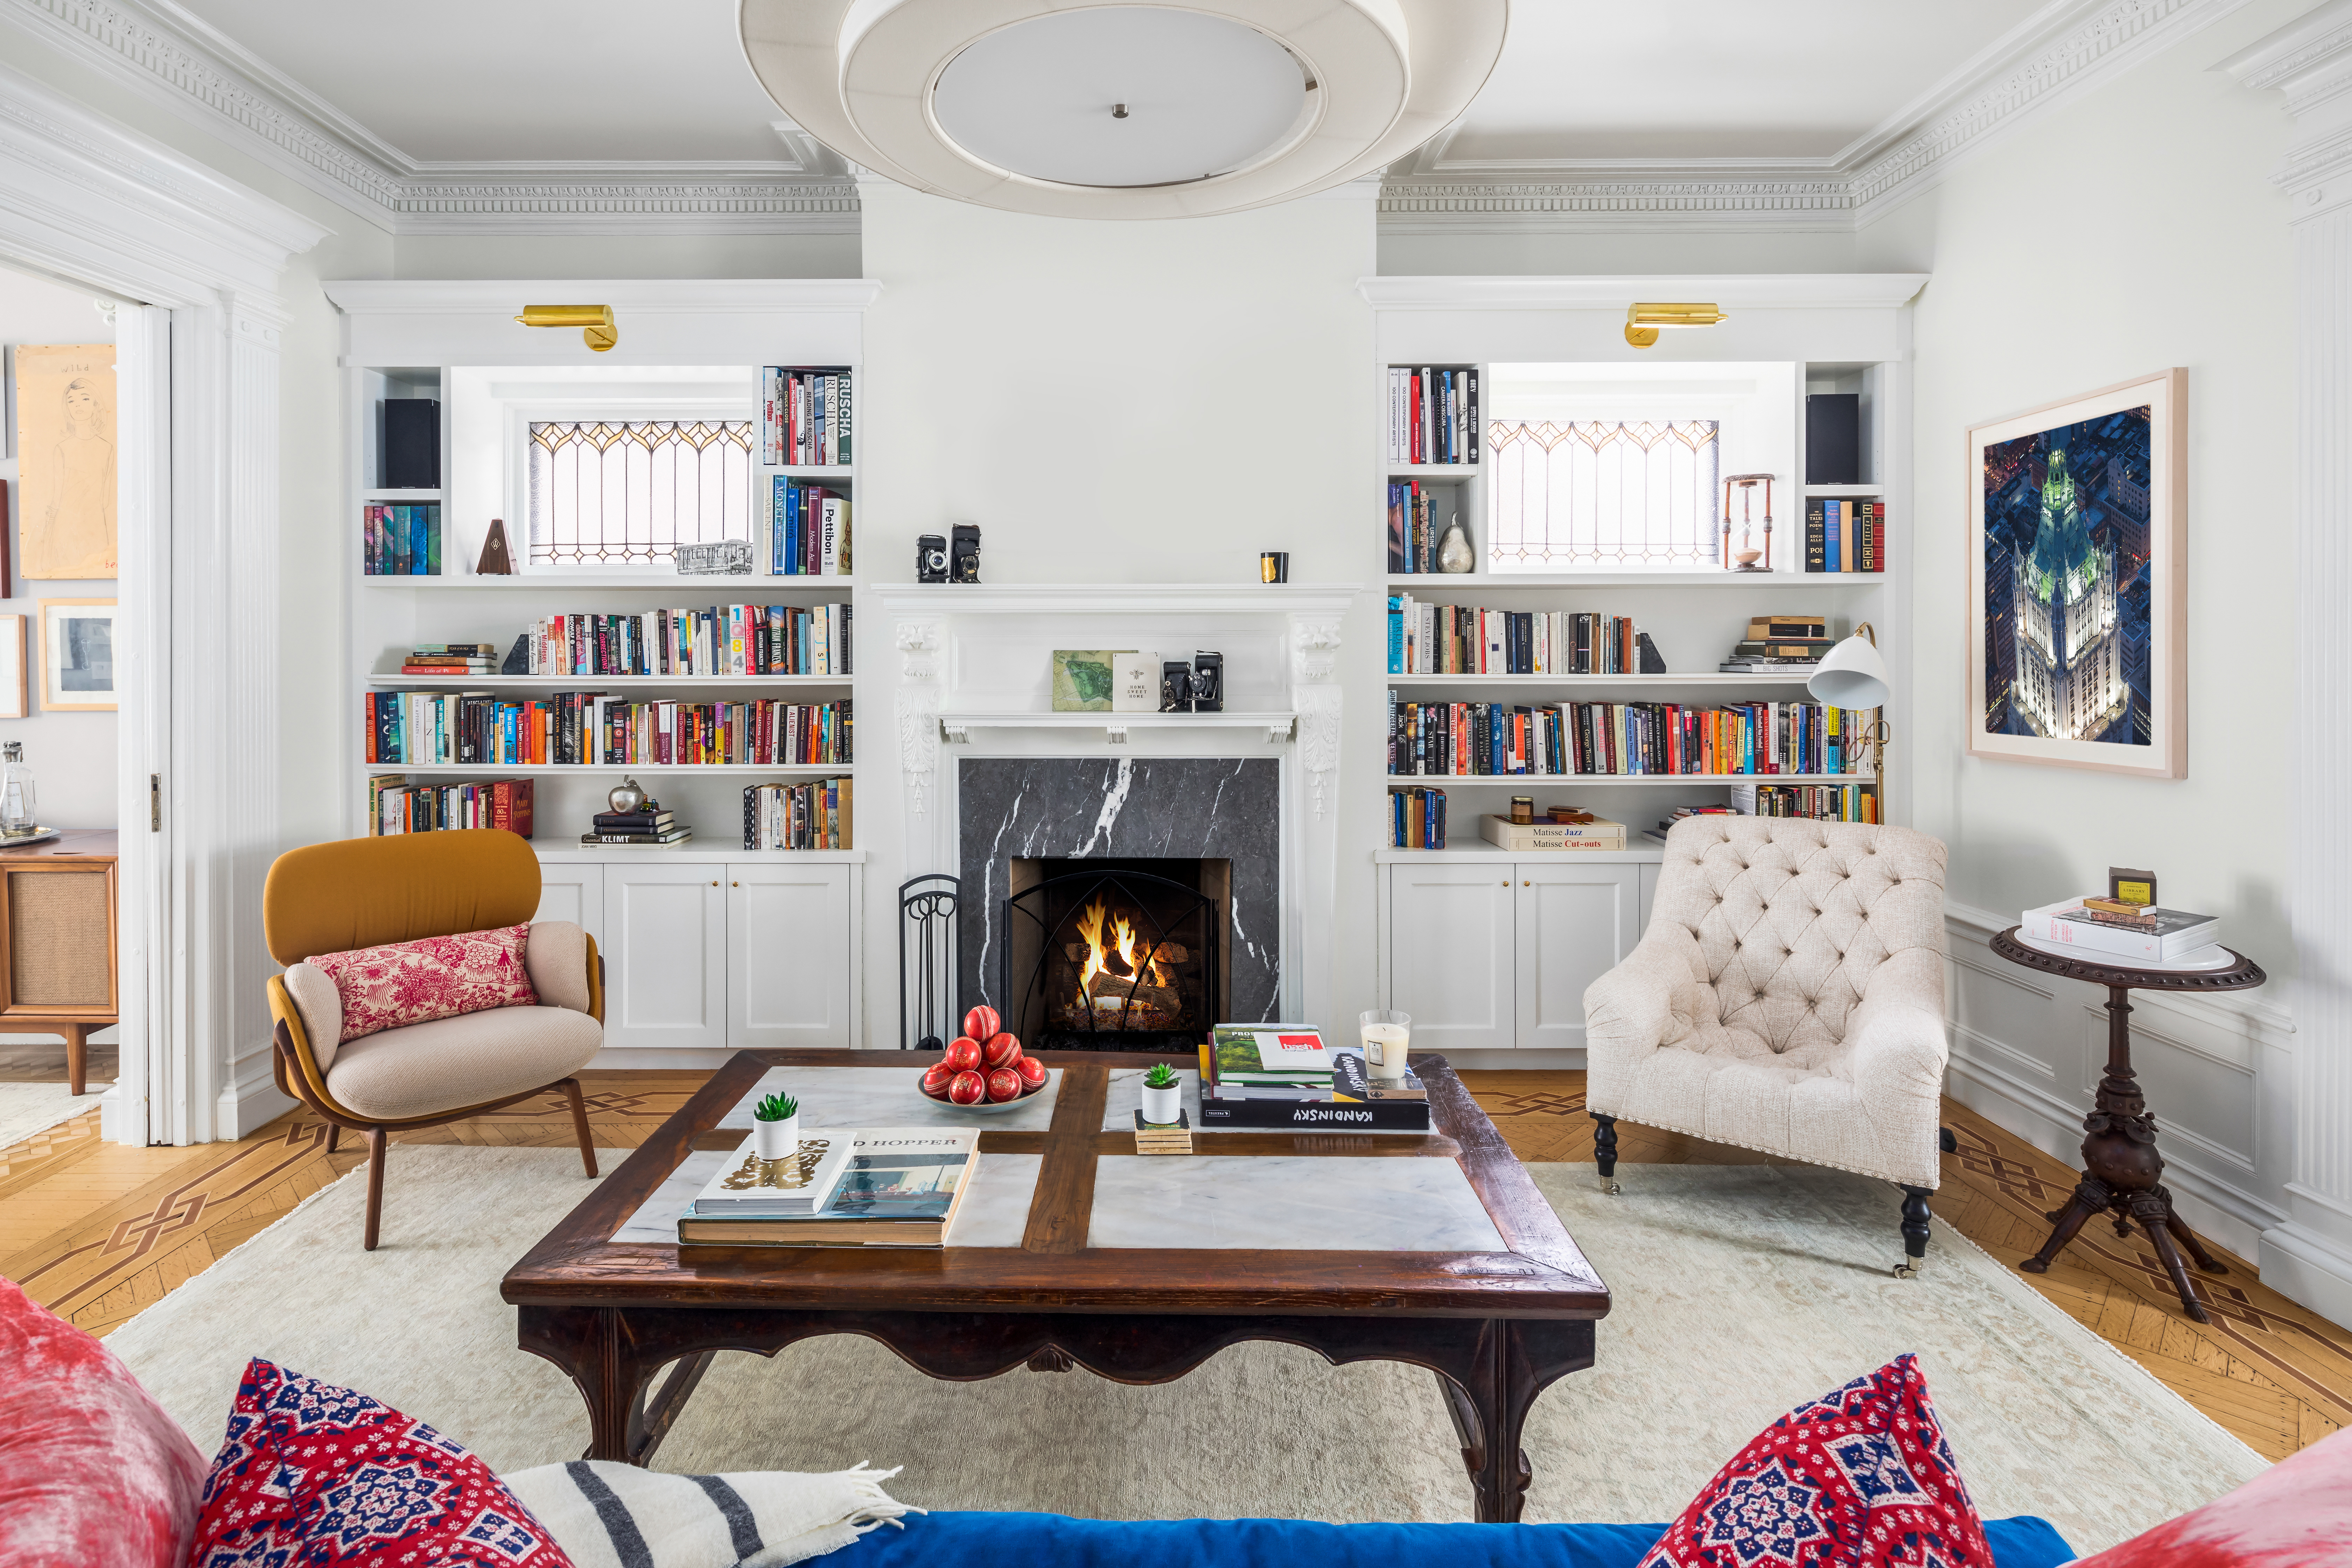 Emily Blunt And John Krasinski S 8m Brooklyn Home For